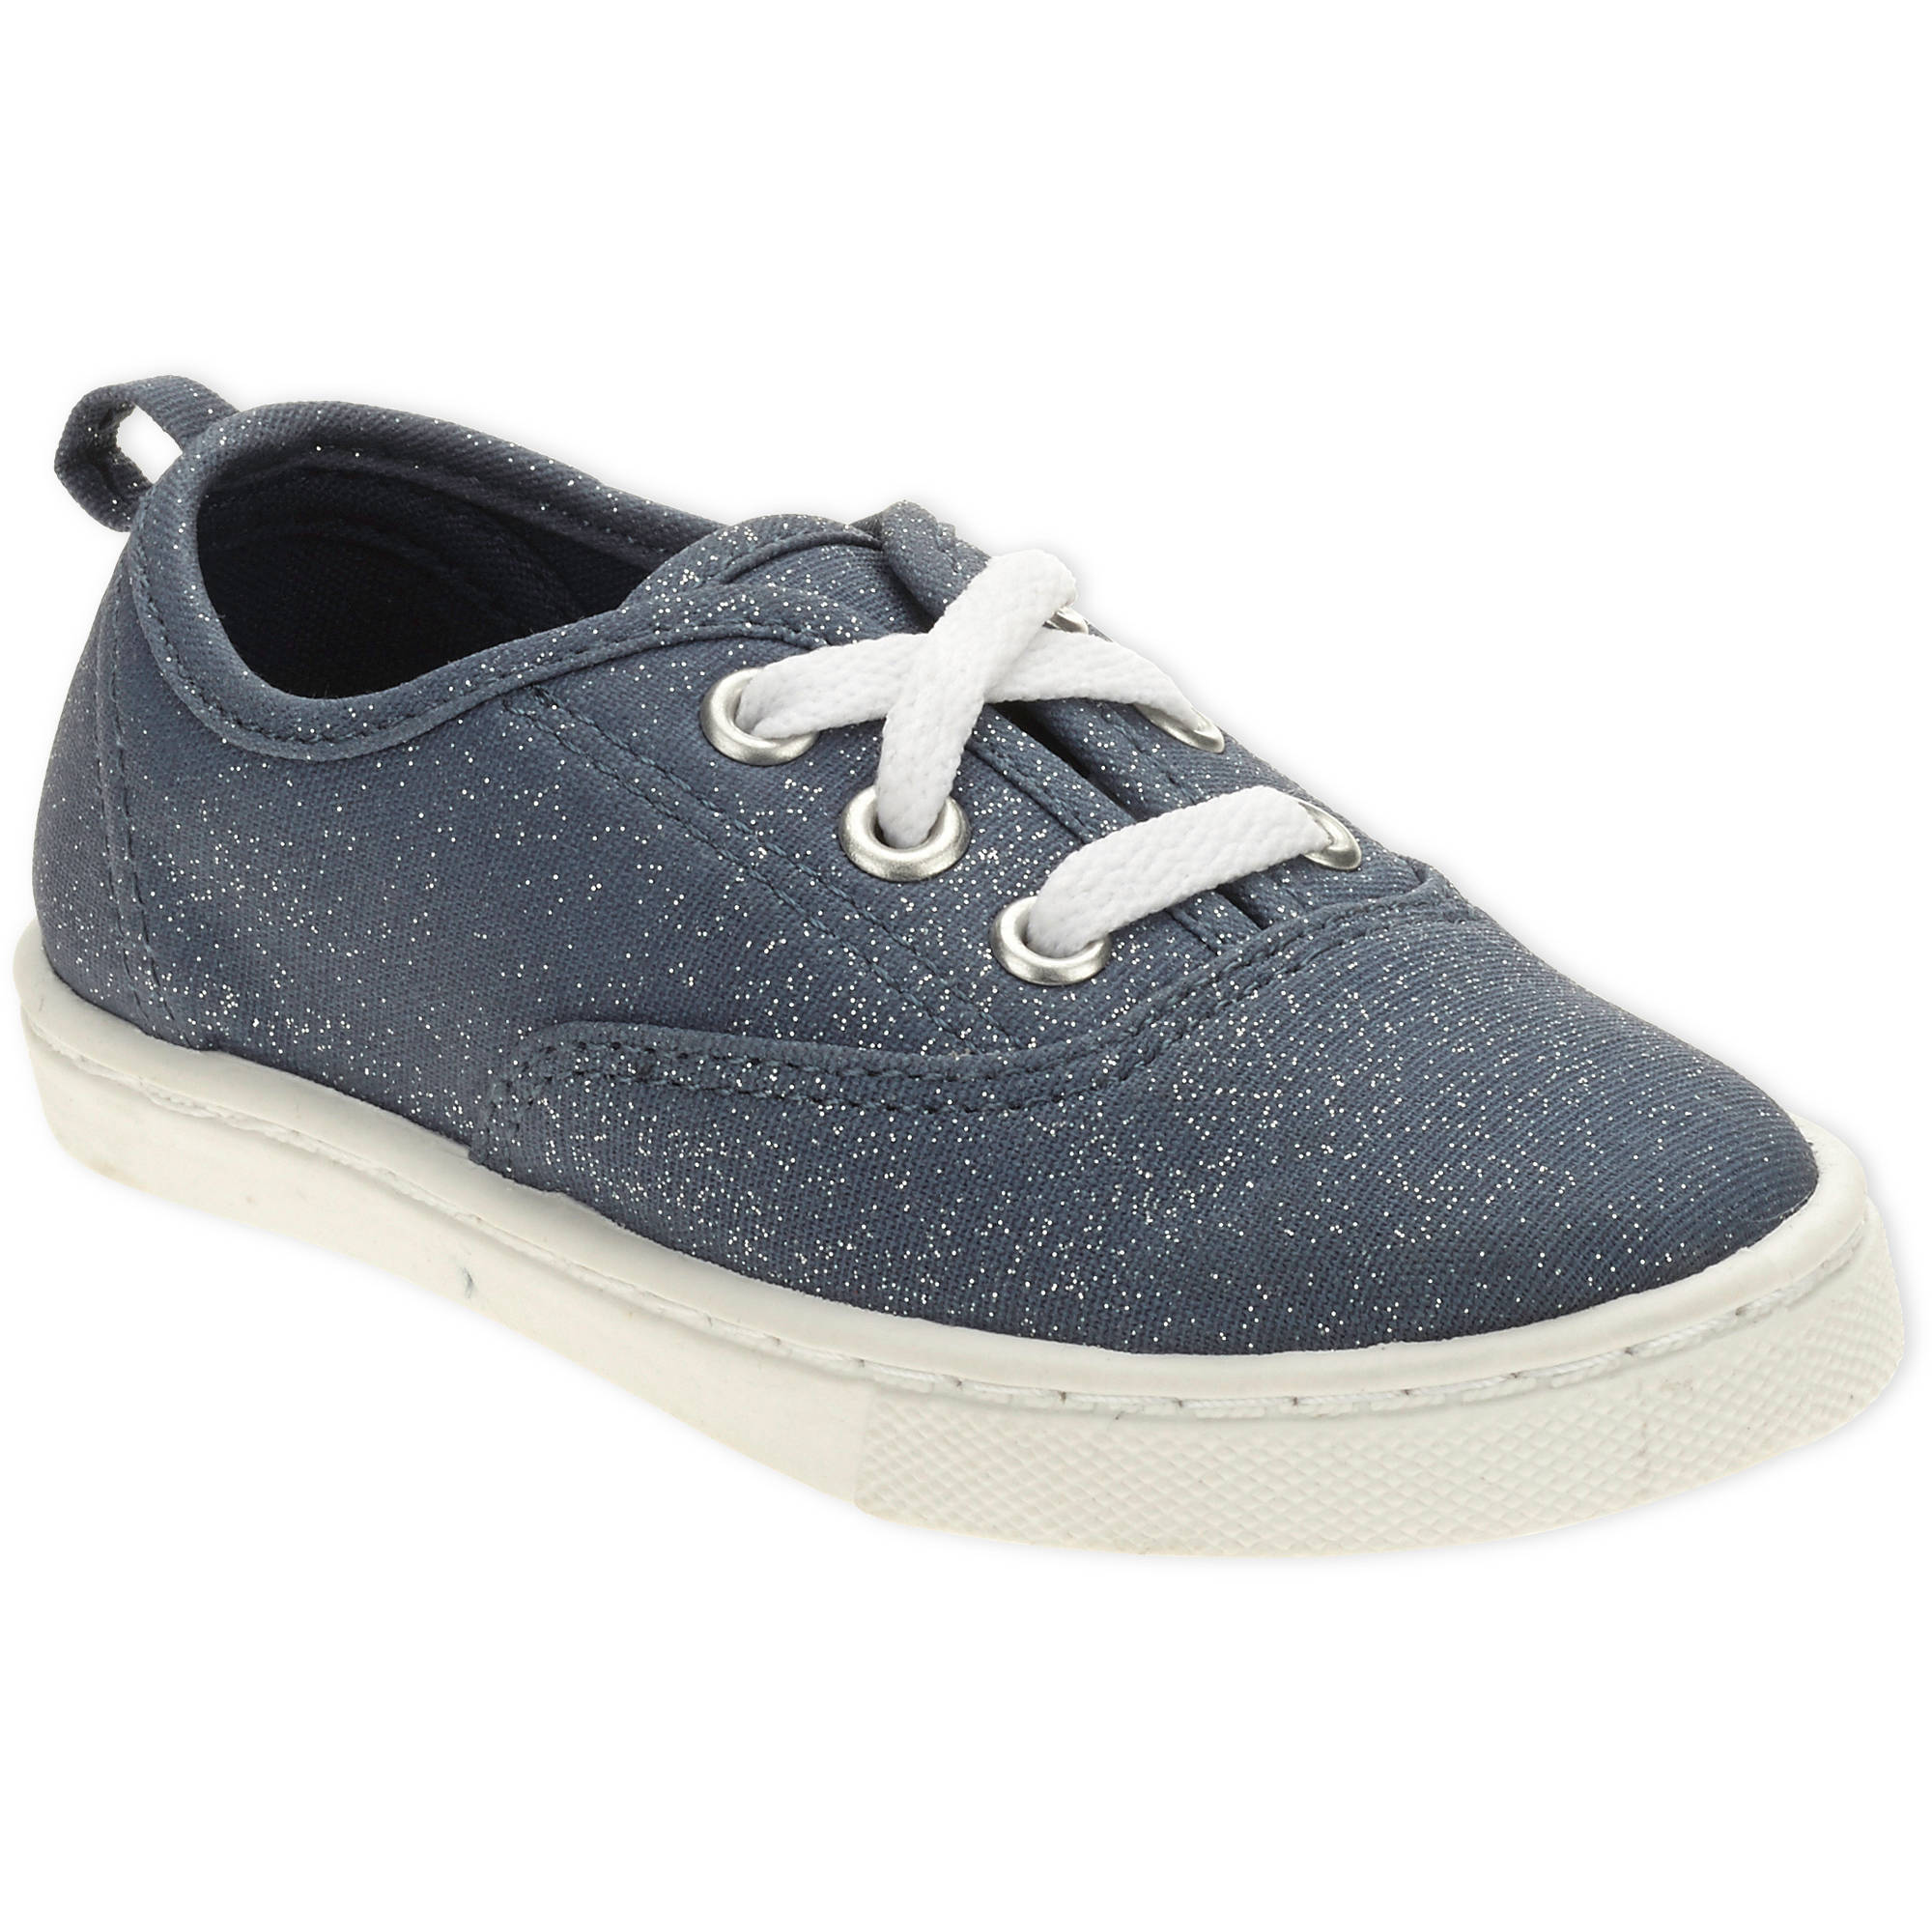 Faded Glory Toddler Girls' Lace-Up Canvas Shoe